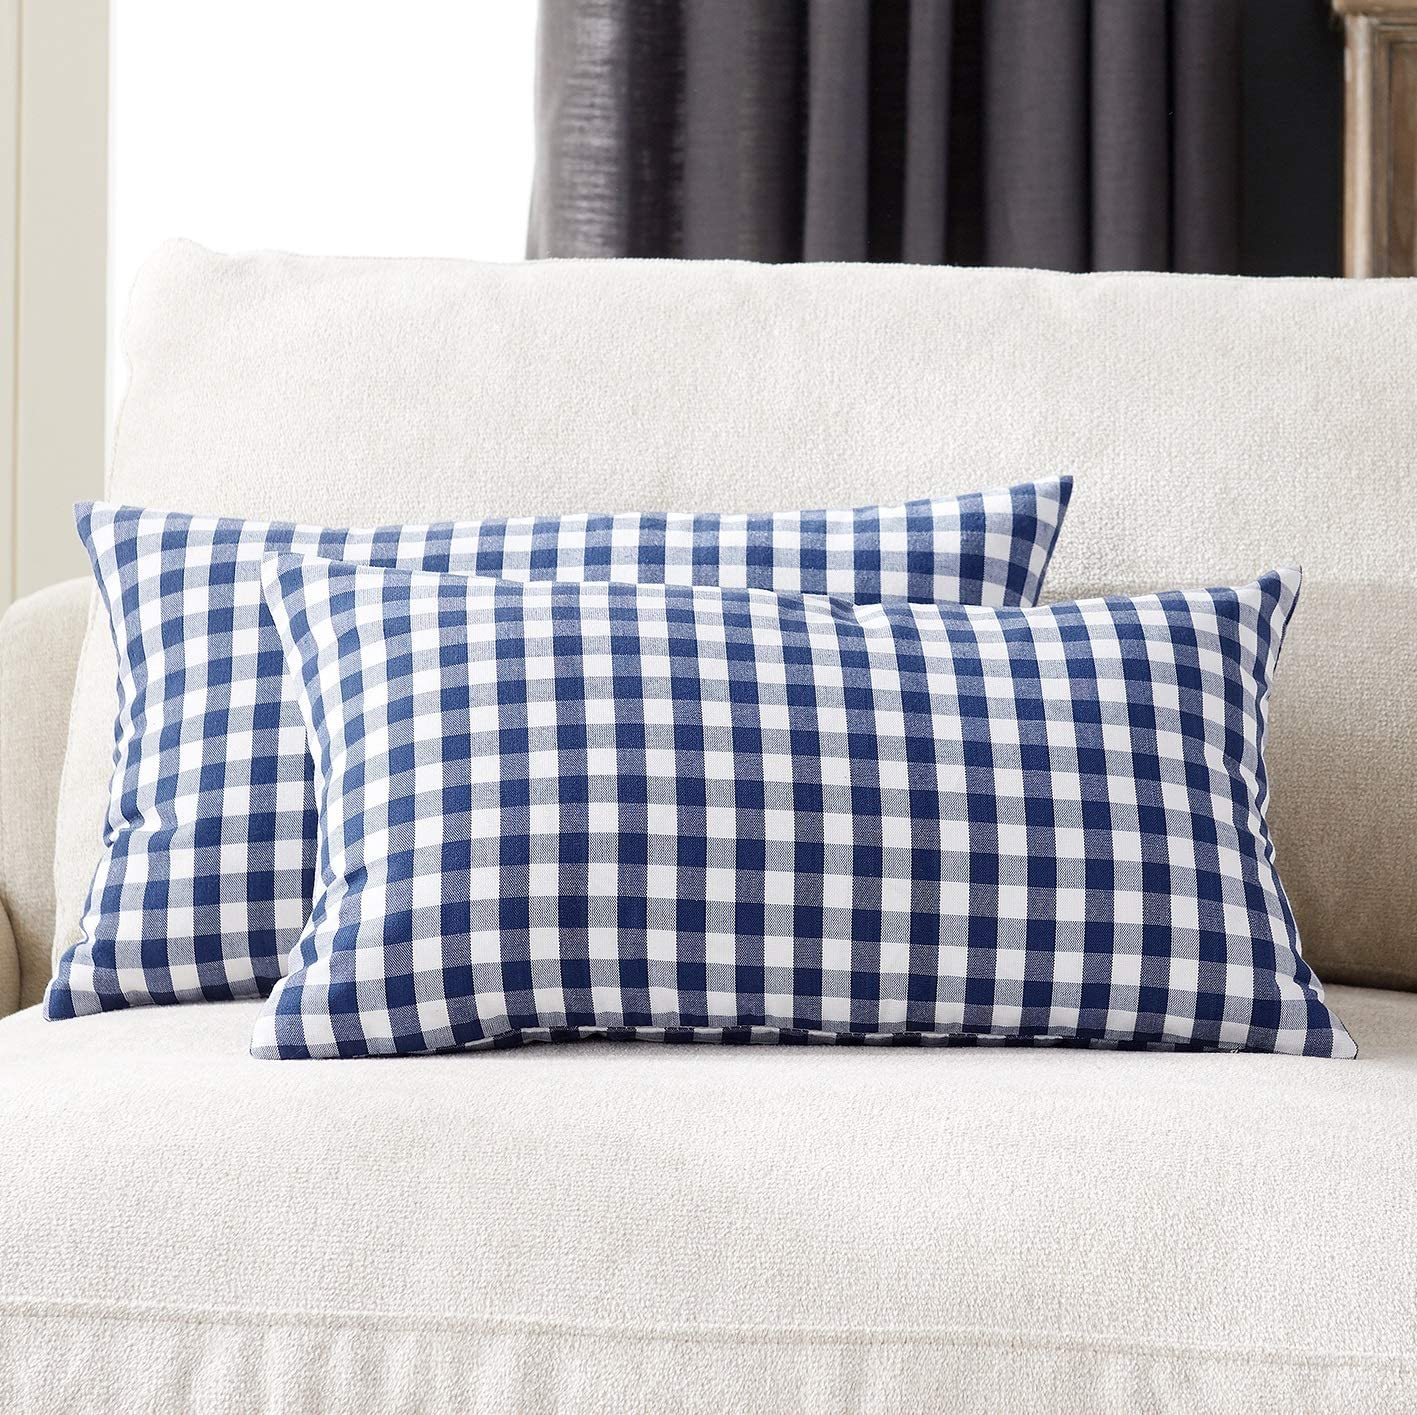 Foindtower Pack of 2 Lumbar Farmhouse Decorative Gingham Throw Pillow Covers Classic Checkered Plaid Cushion Cover Rustic Modern Retro Decor for Couch Bedroom Chair 12 x 20 Inch Navy and White